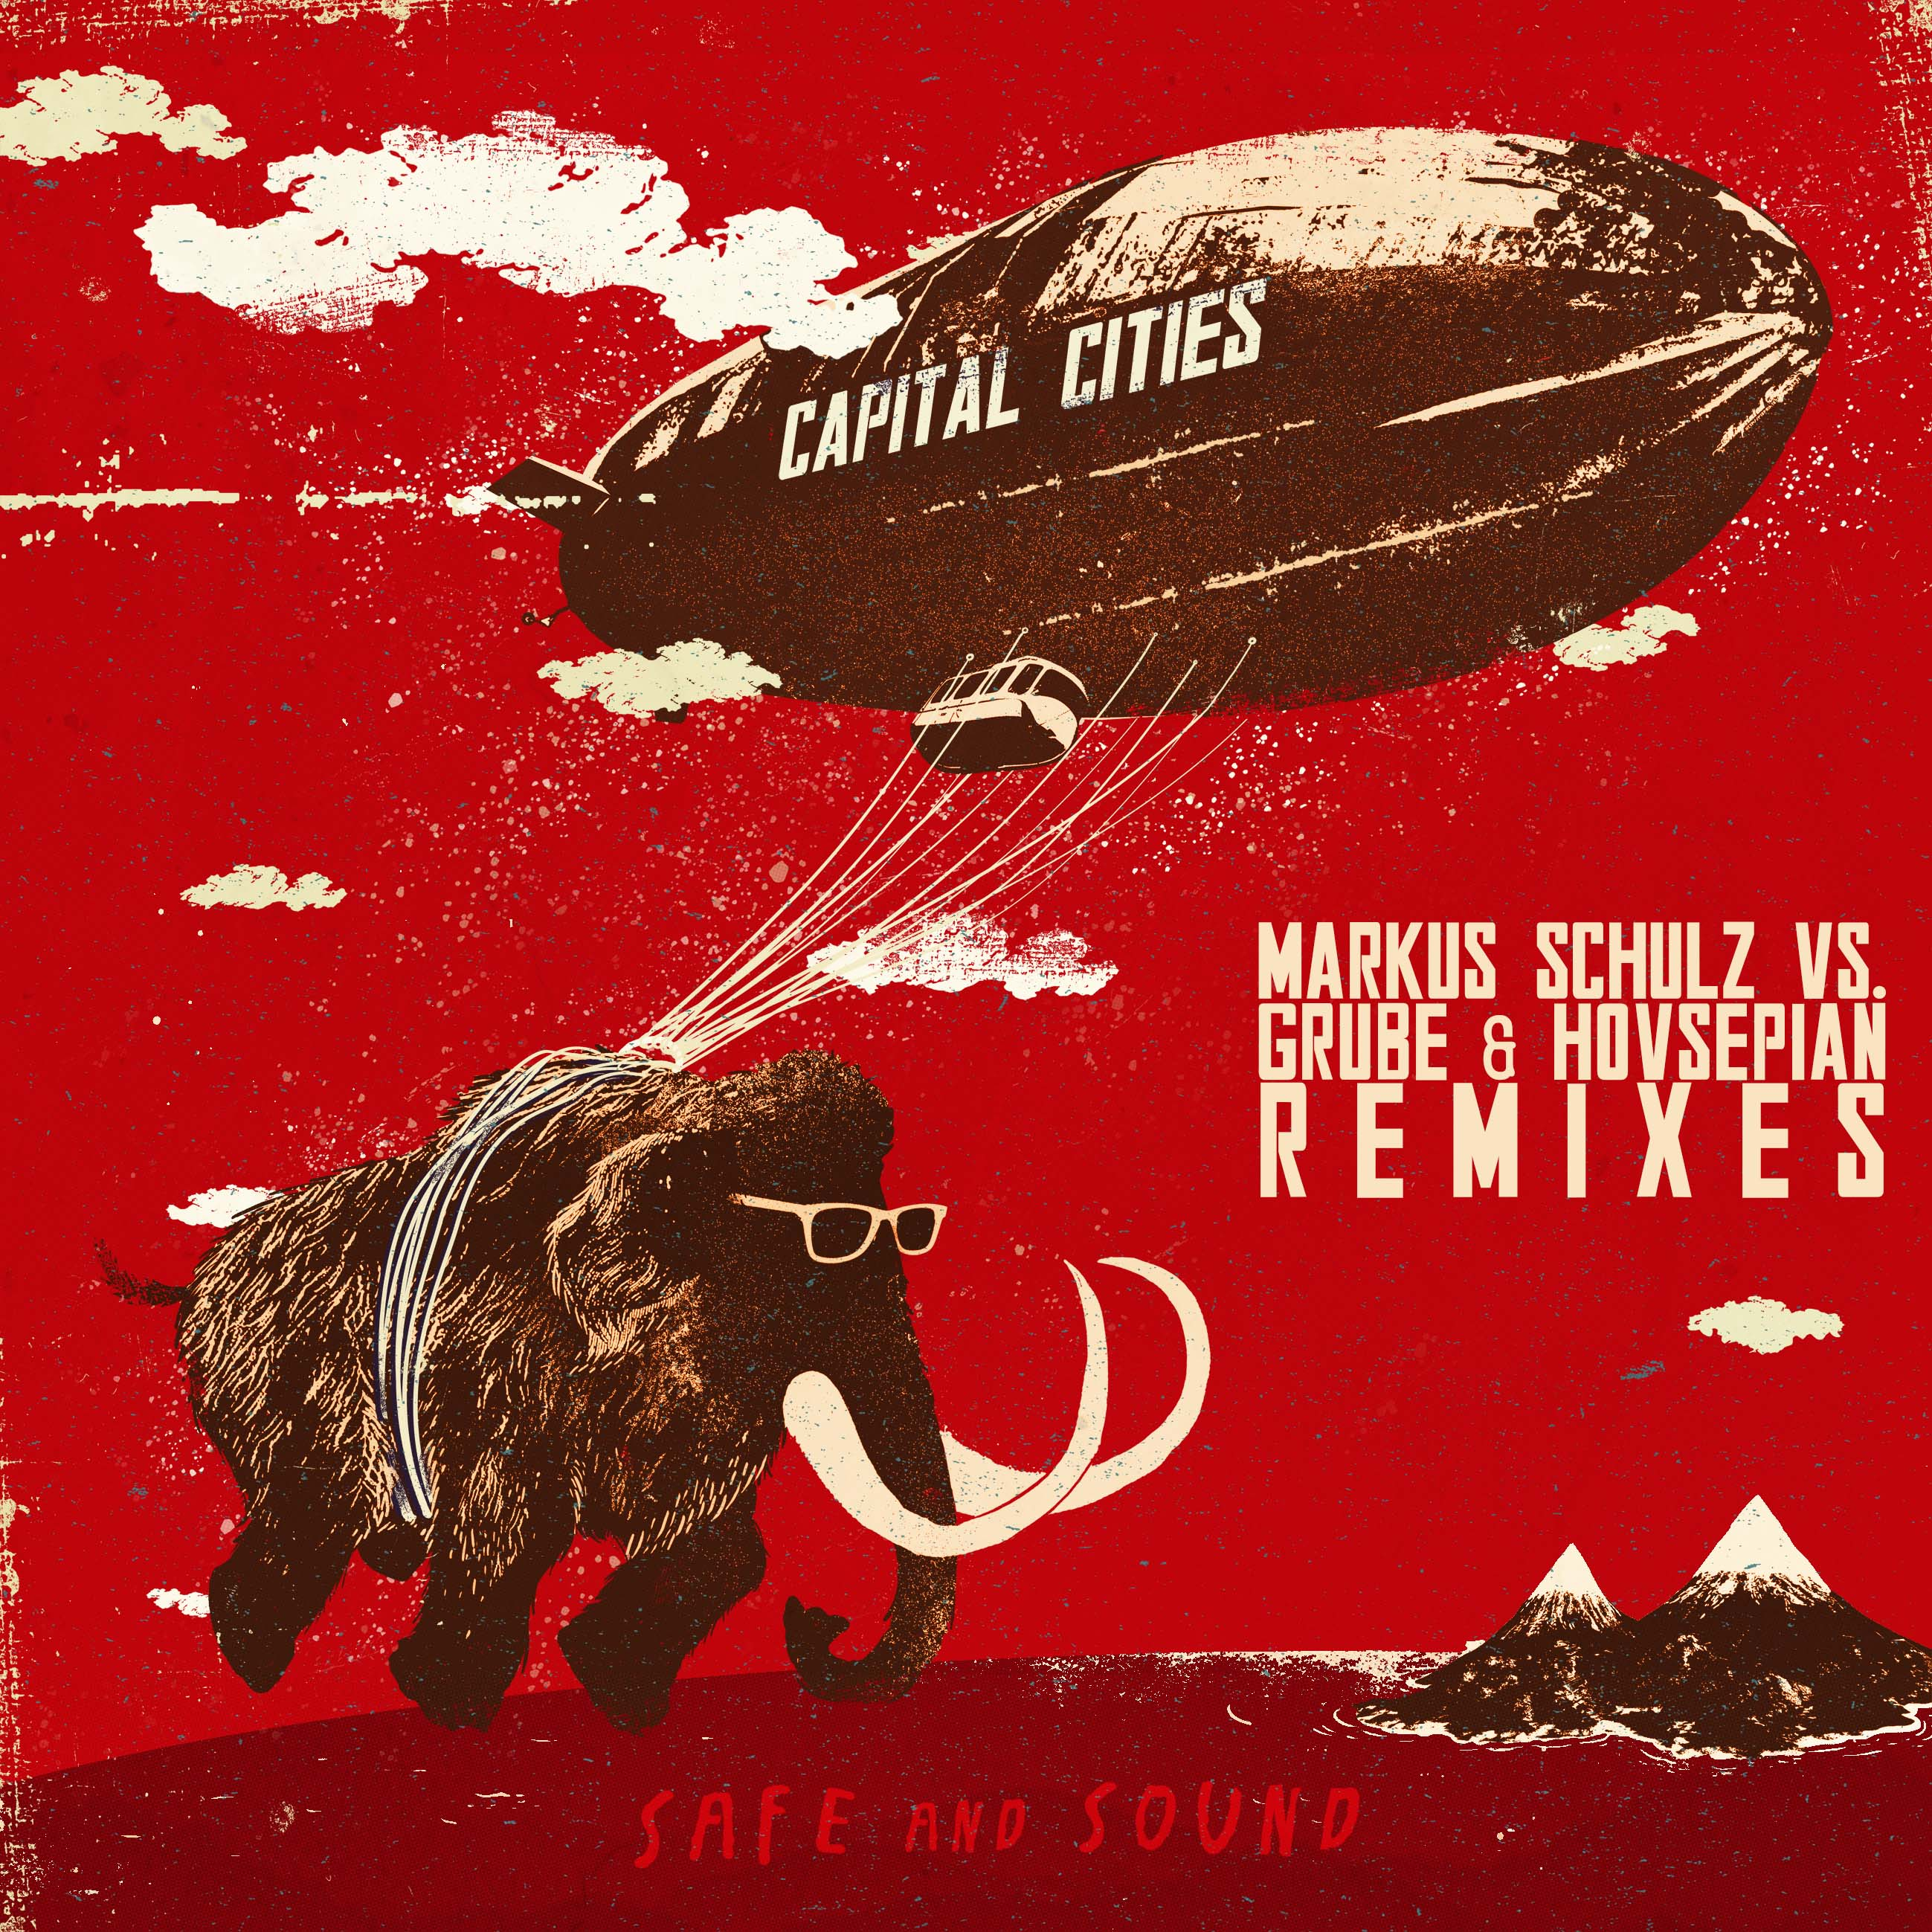 Cap Cities_Markus Schulz Remix2